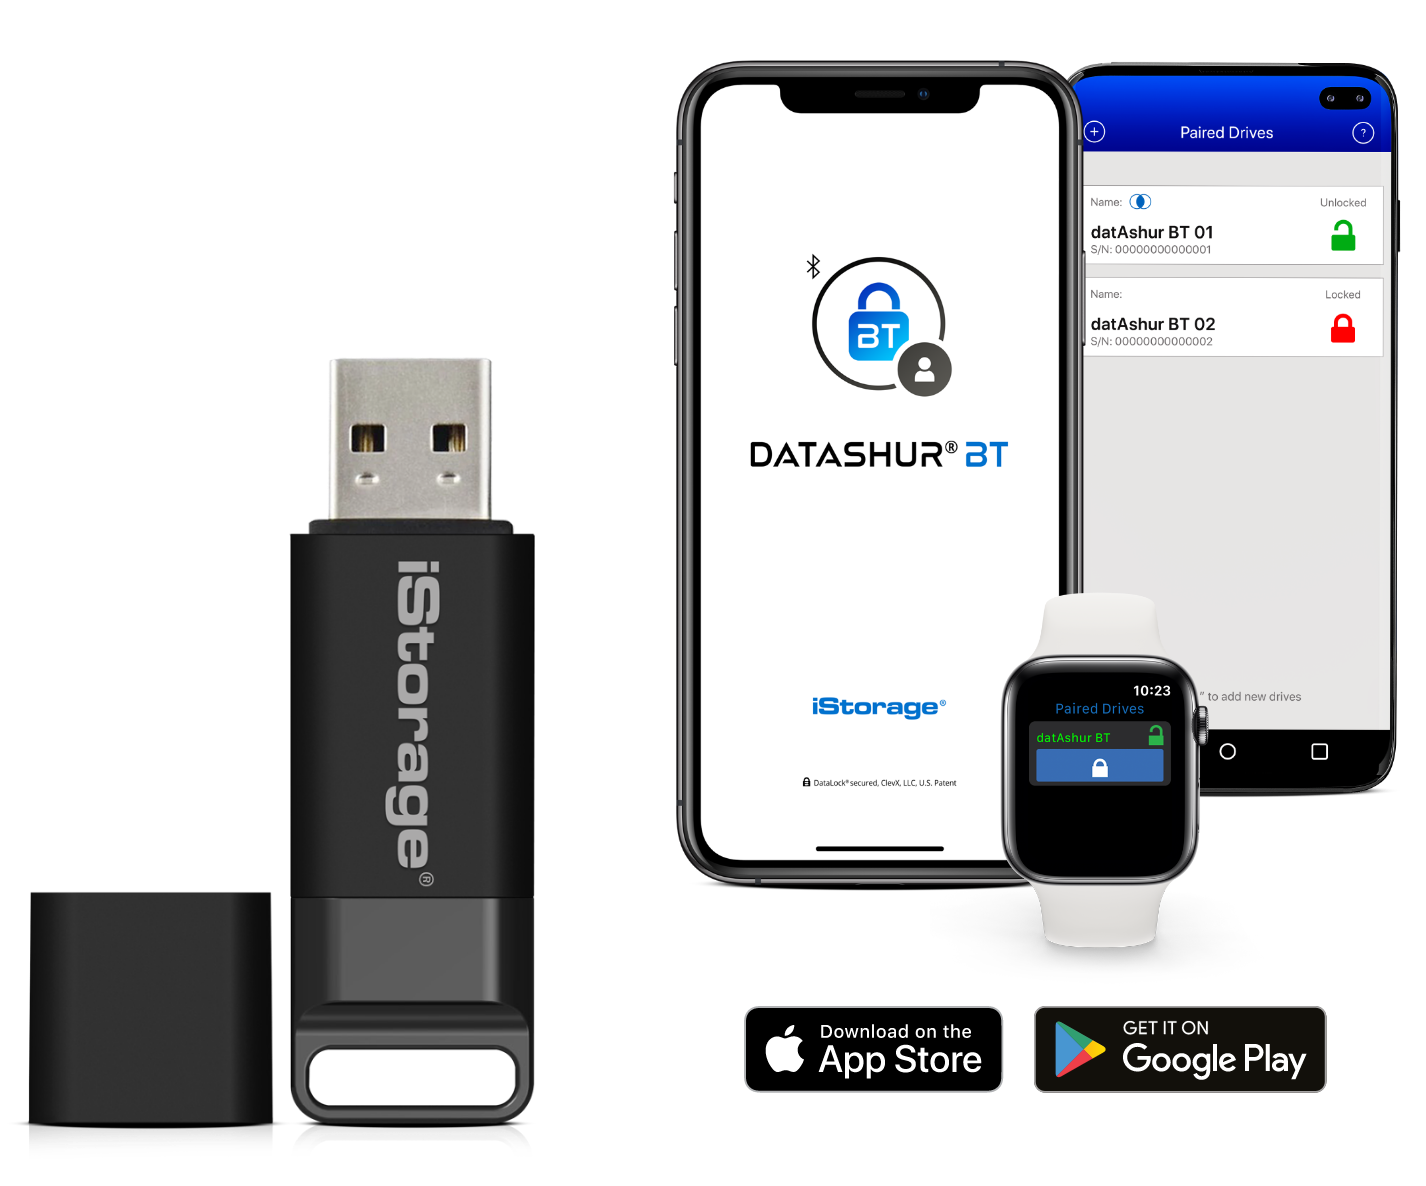 Image of datAshur BT and smart devices